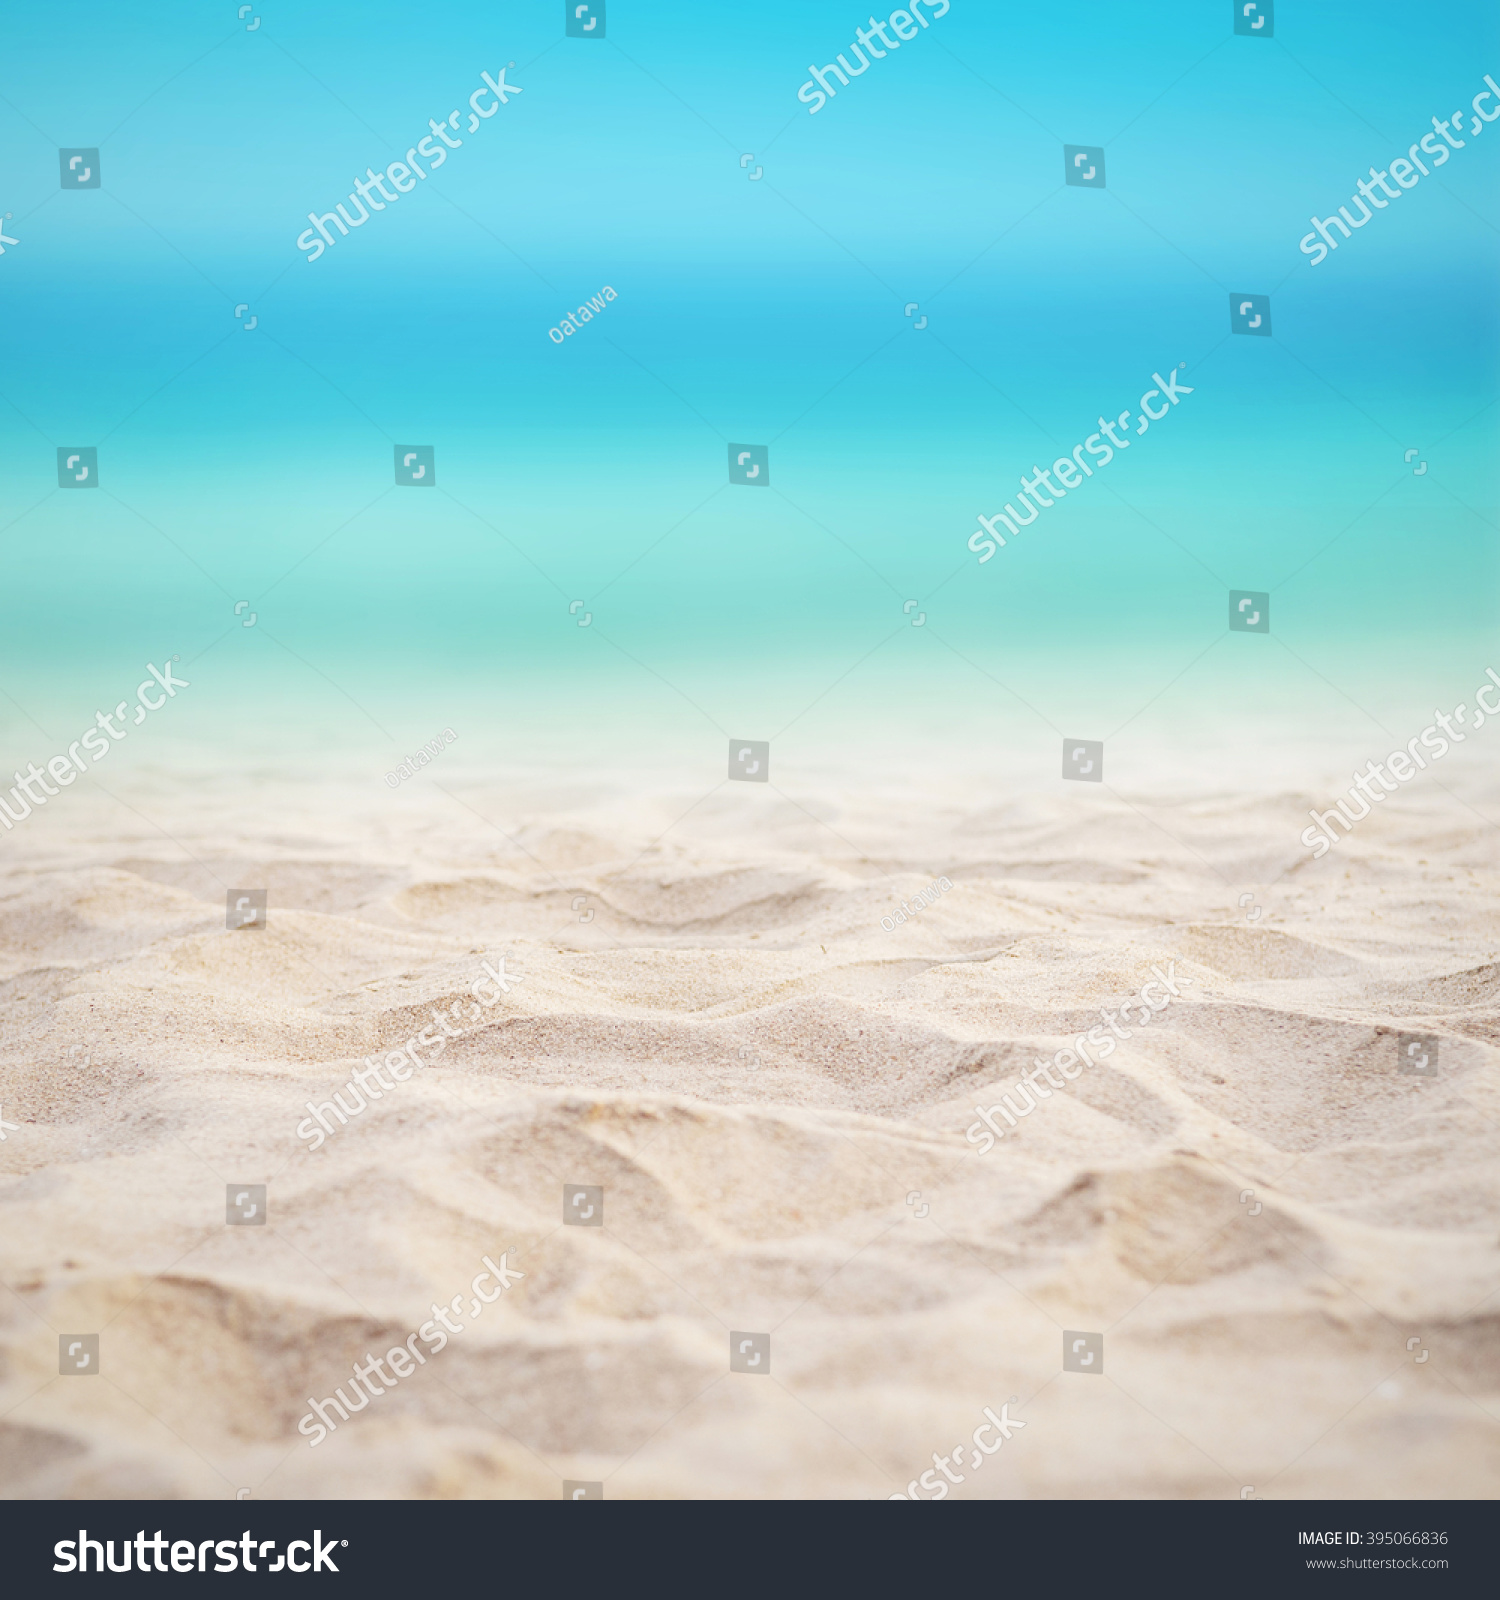 Sand Beach In Summer Sky Background: Close Sand Blurred Sea Sky Background Stock Photo